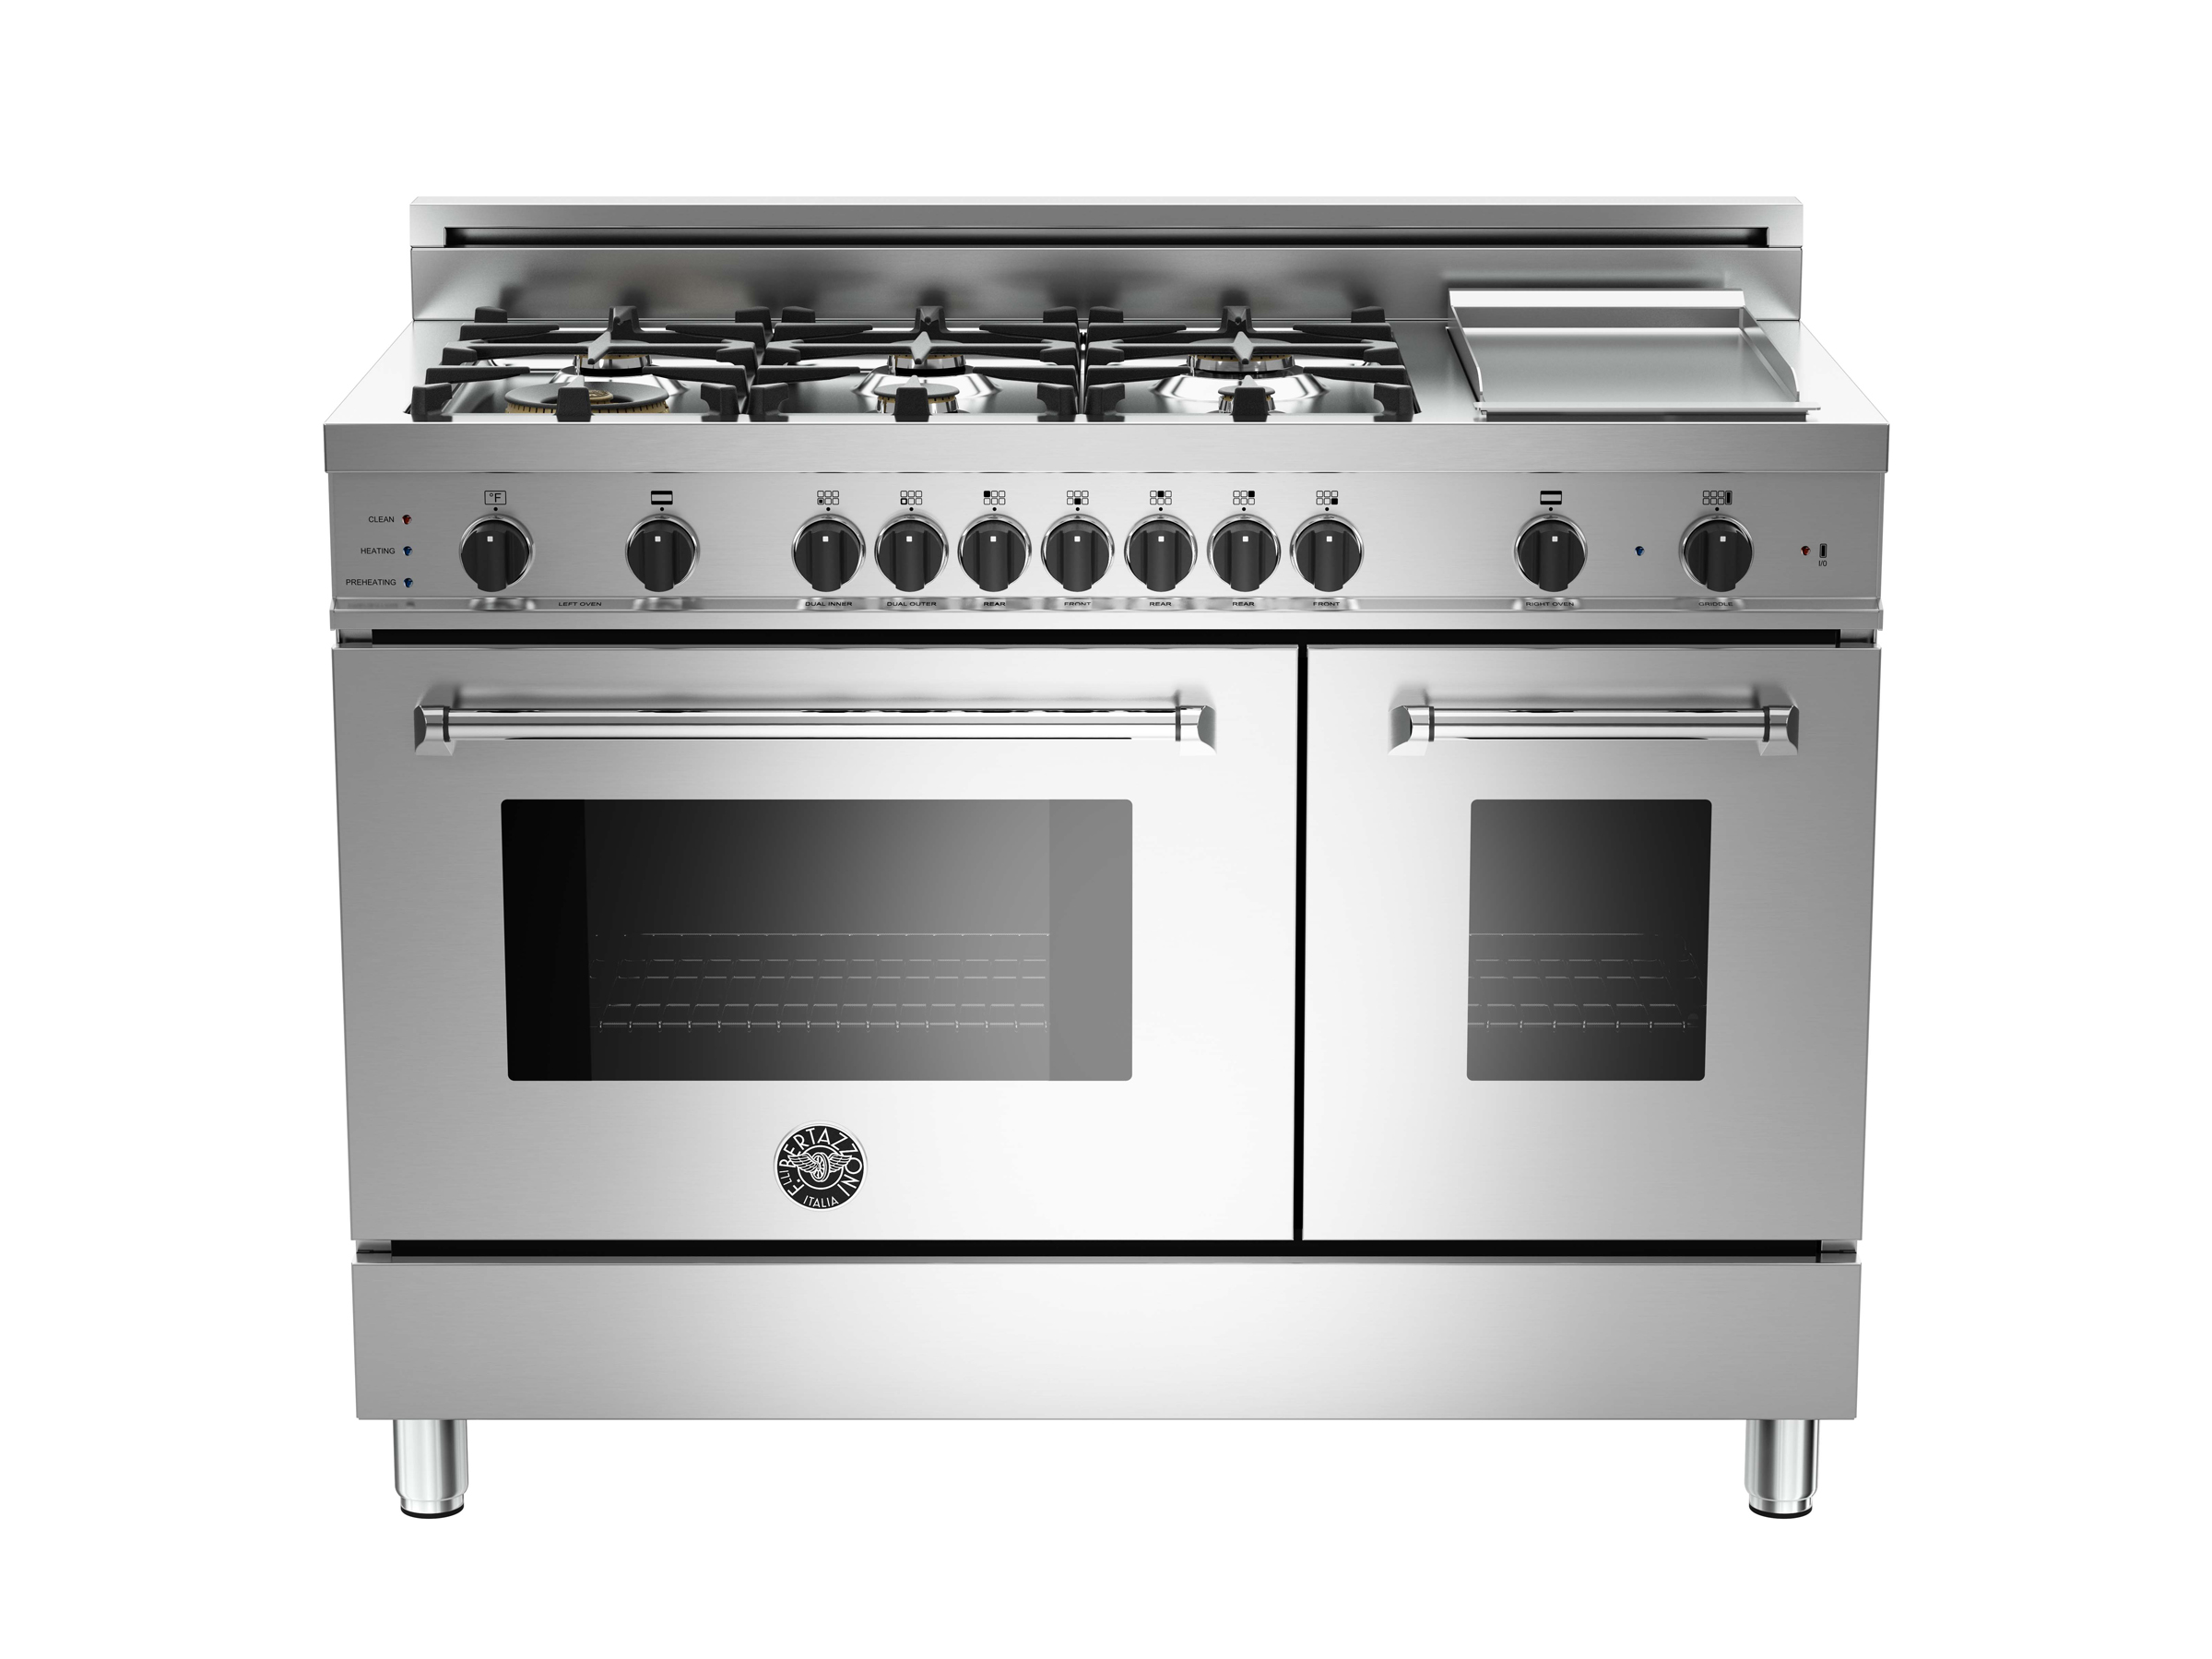 48 6-Burner+Griddle, Electric Self-Clean Double oven | Bertazzoni - Stainless